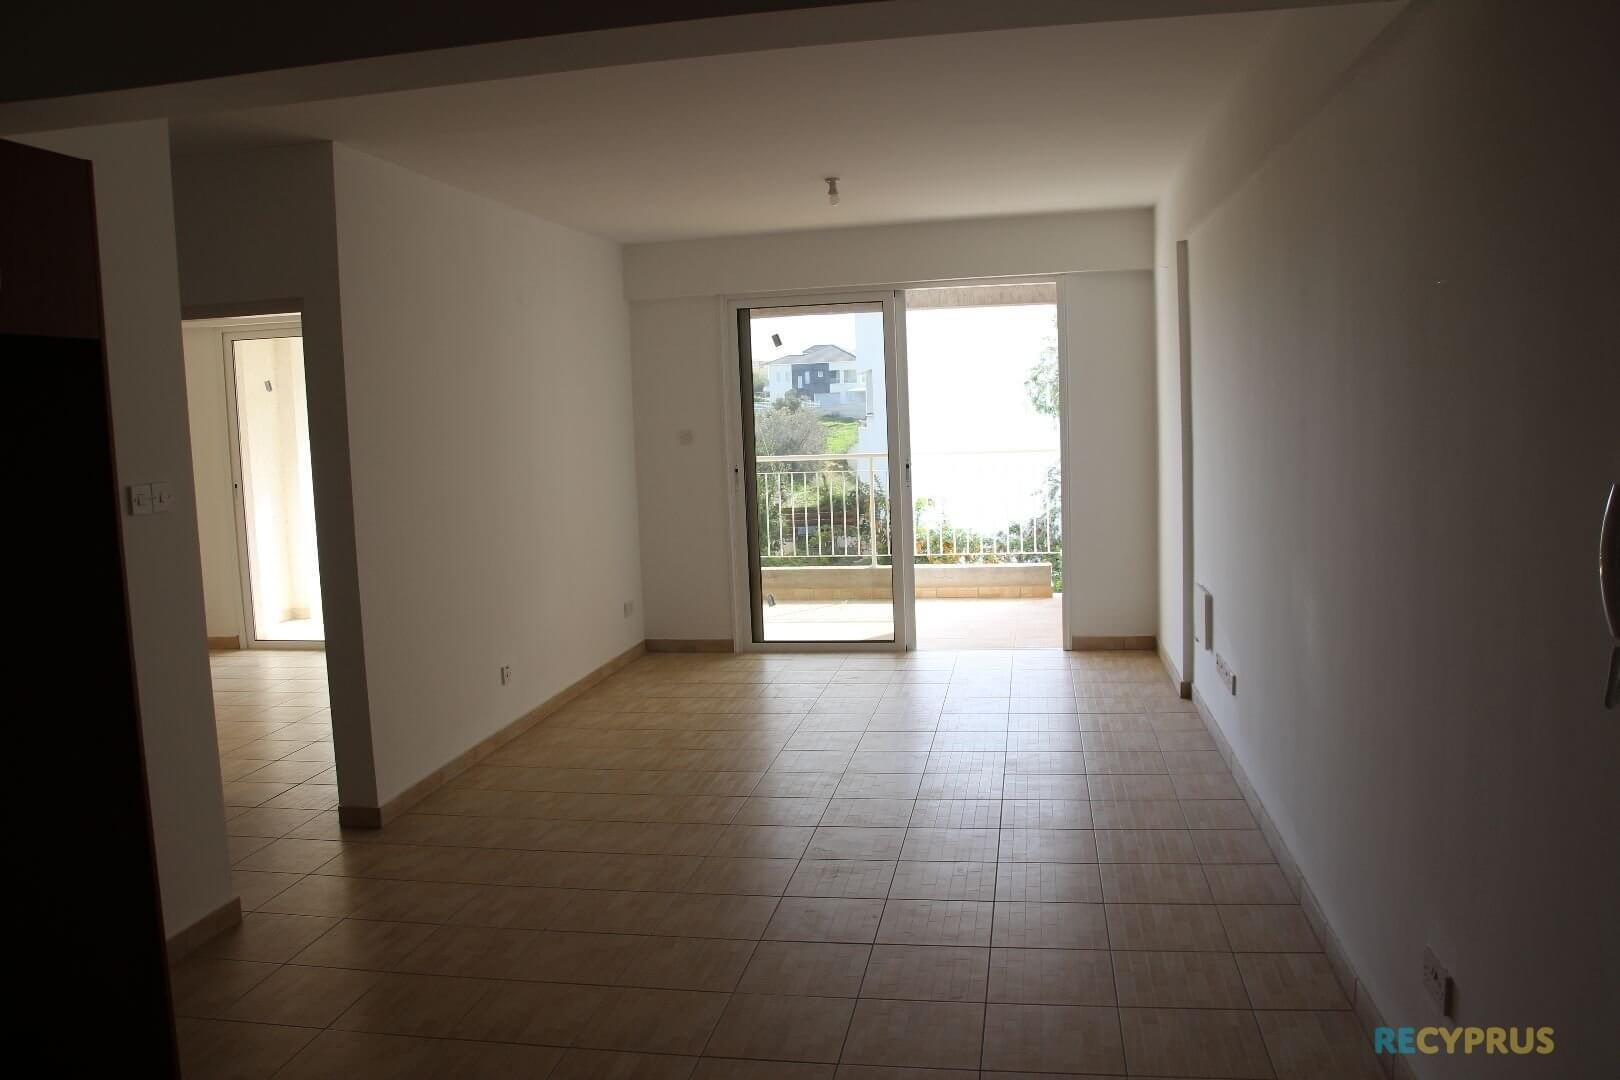 Apartment for sale Kapparis Famagusta Cyprus 4 3519